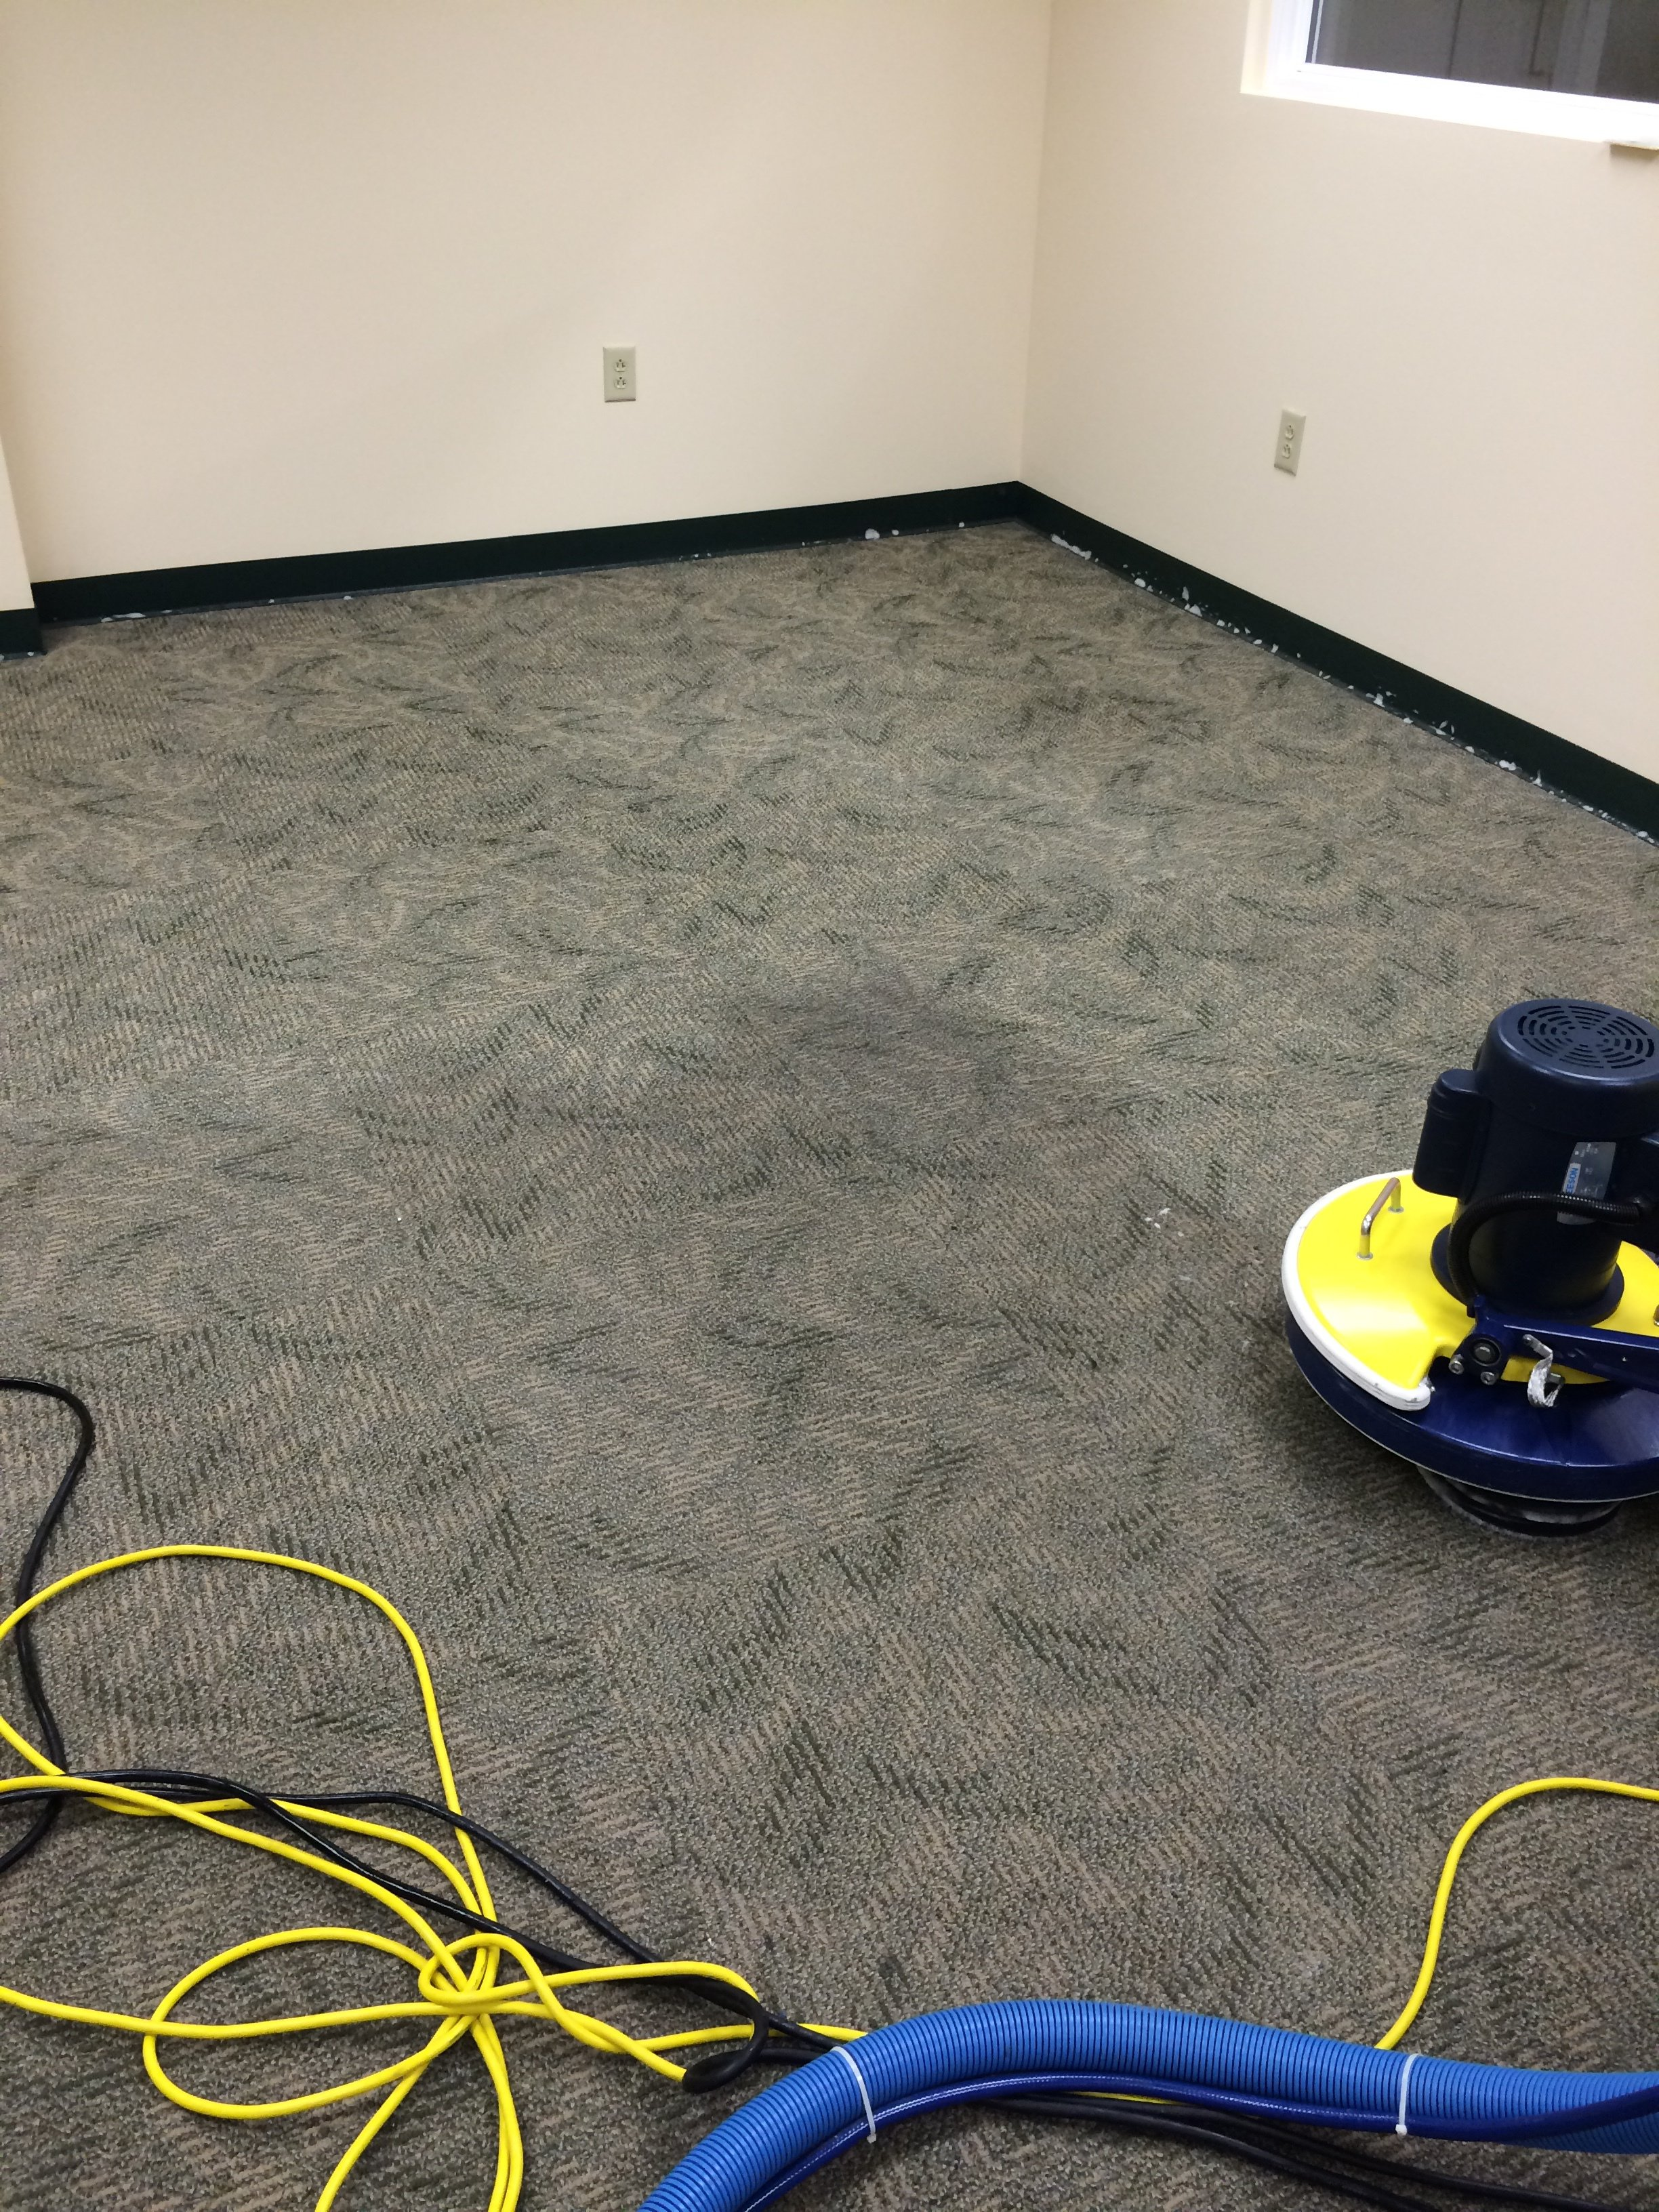 Equipment used in maintenance solutions for providing solid floor in Burlington, KY